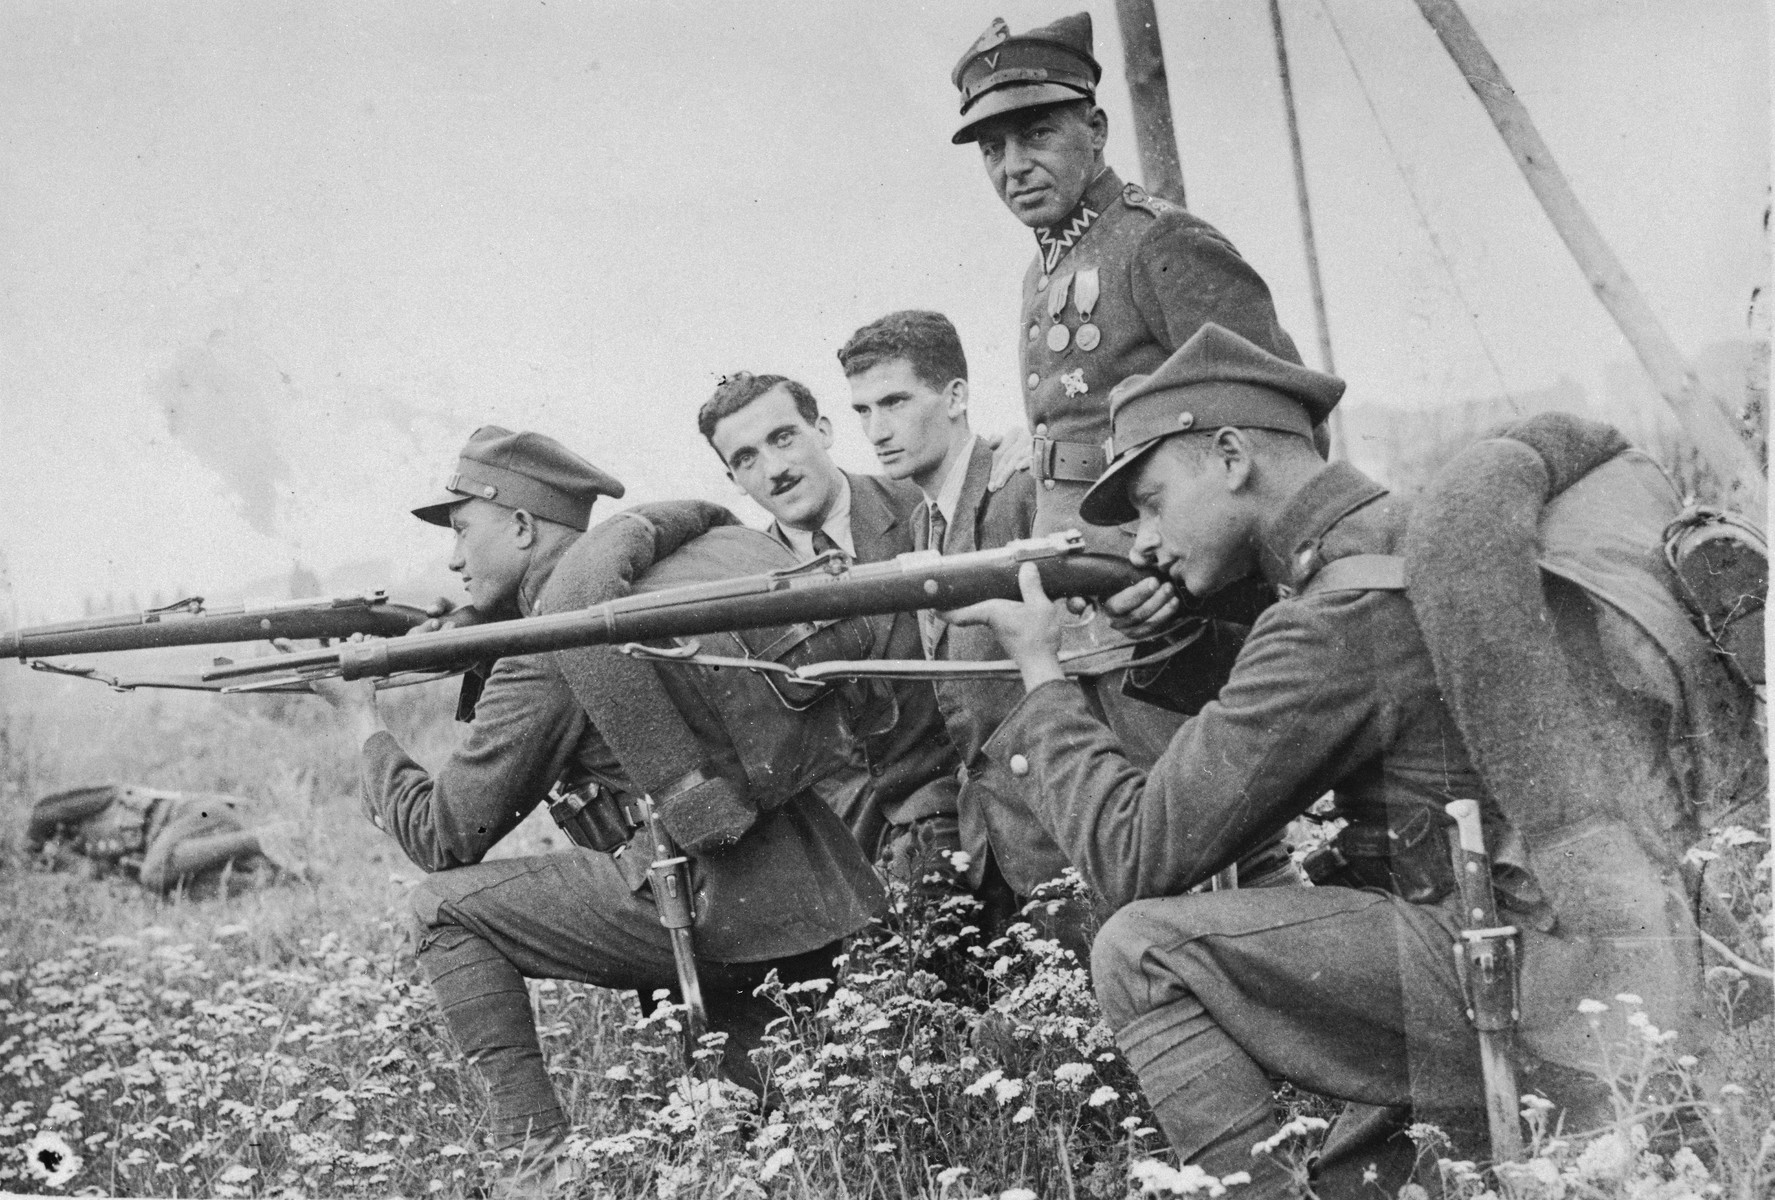 Jewish soldiers in the Polish army practice shooting.    The donor's husband, Majer Rozental, and his brother Nissan, are pictured in civilian dress in the center.  Majer (the brother on the left) survived the war by fleeing to the Soviet Union.  Nissan perished.